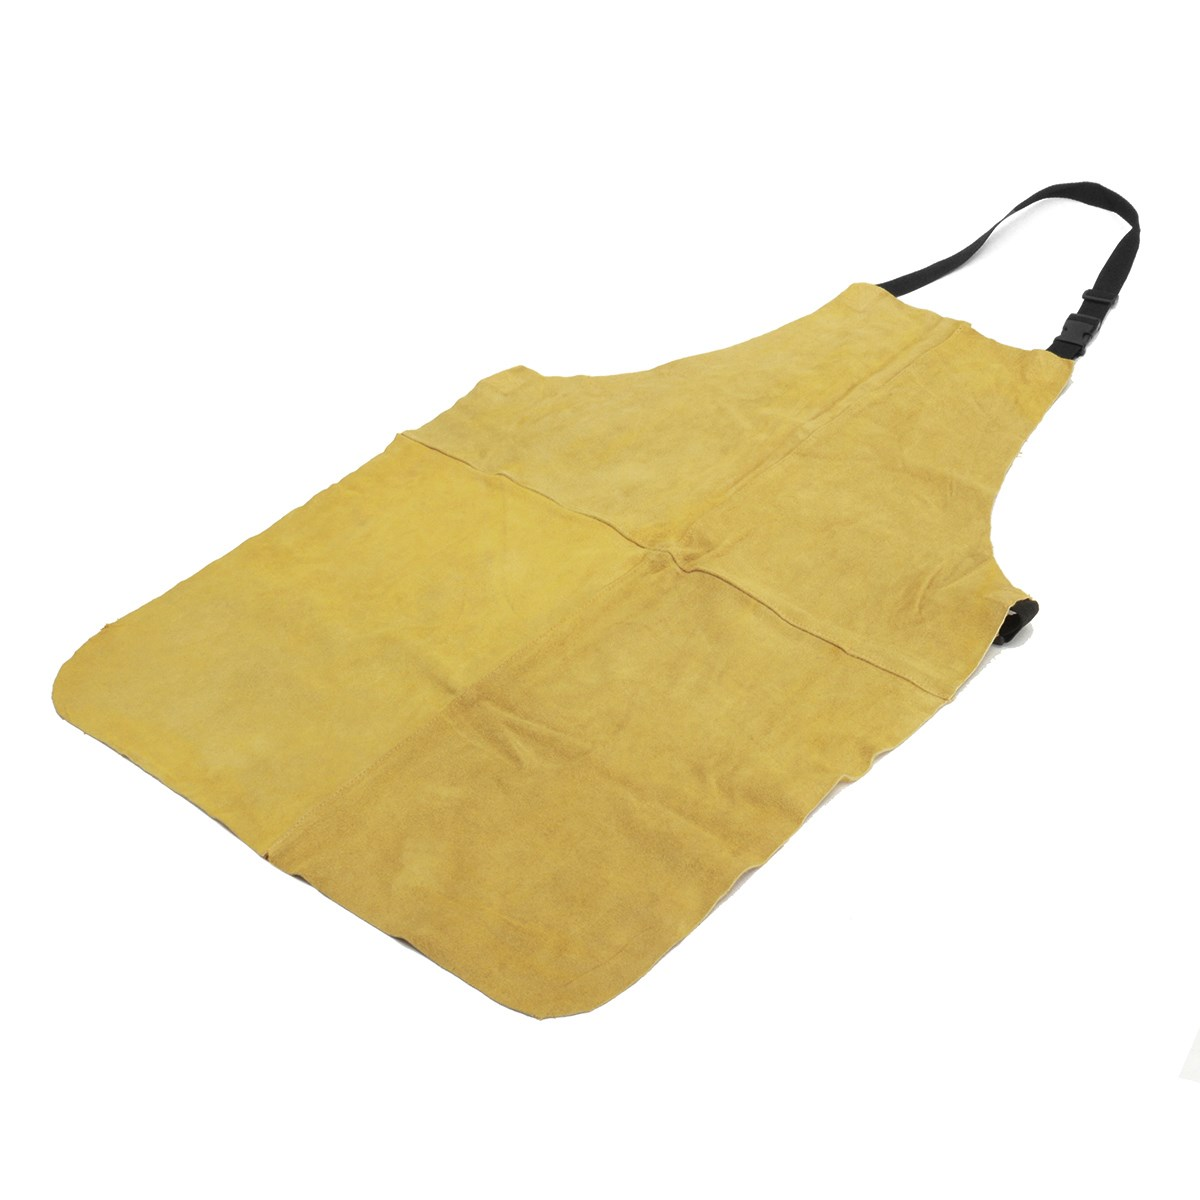 NEW Welders Dual Leather Welding Cutting Bib Shop Apron Heat Resistant Workplace Safety Safety Clothing Self Protect new safurance welders dual leather